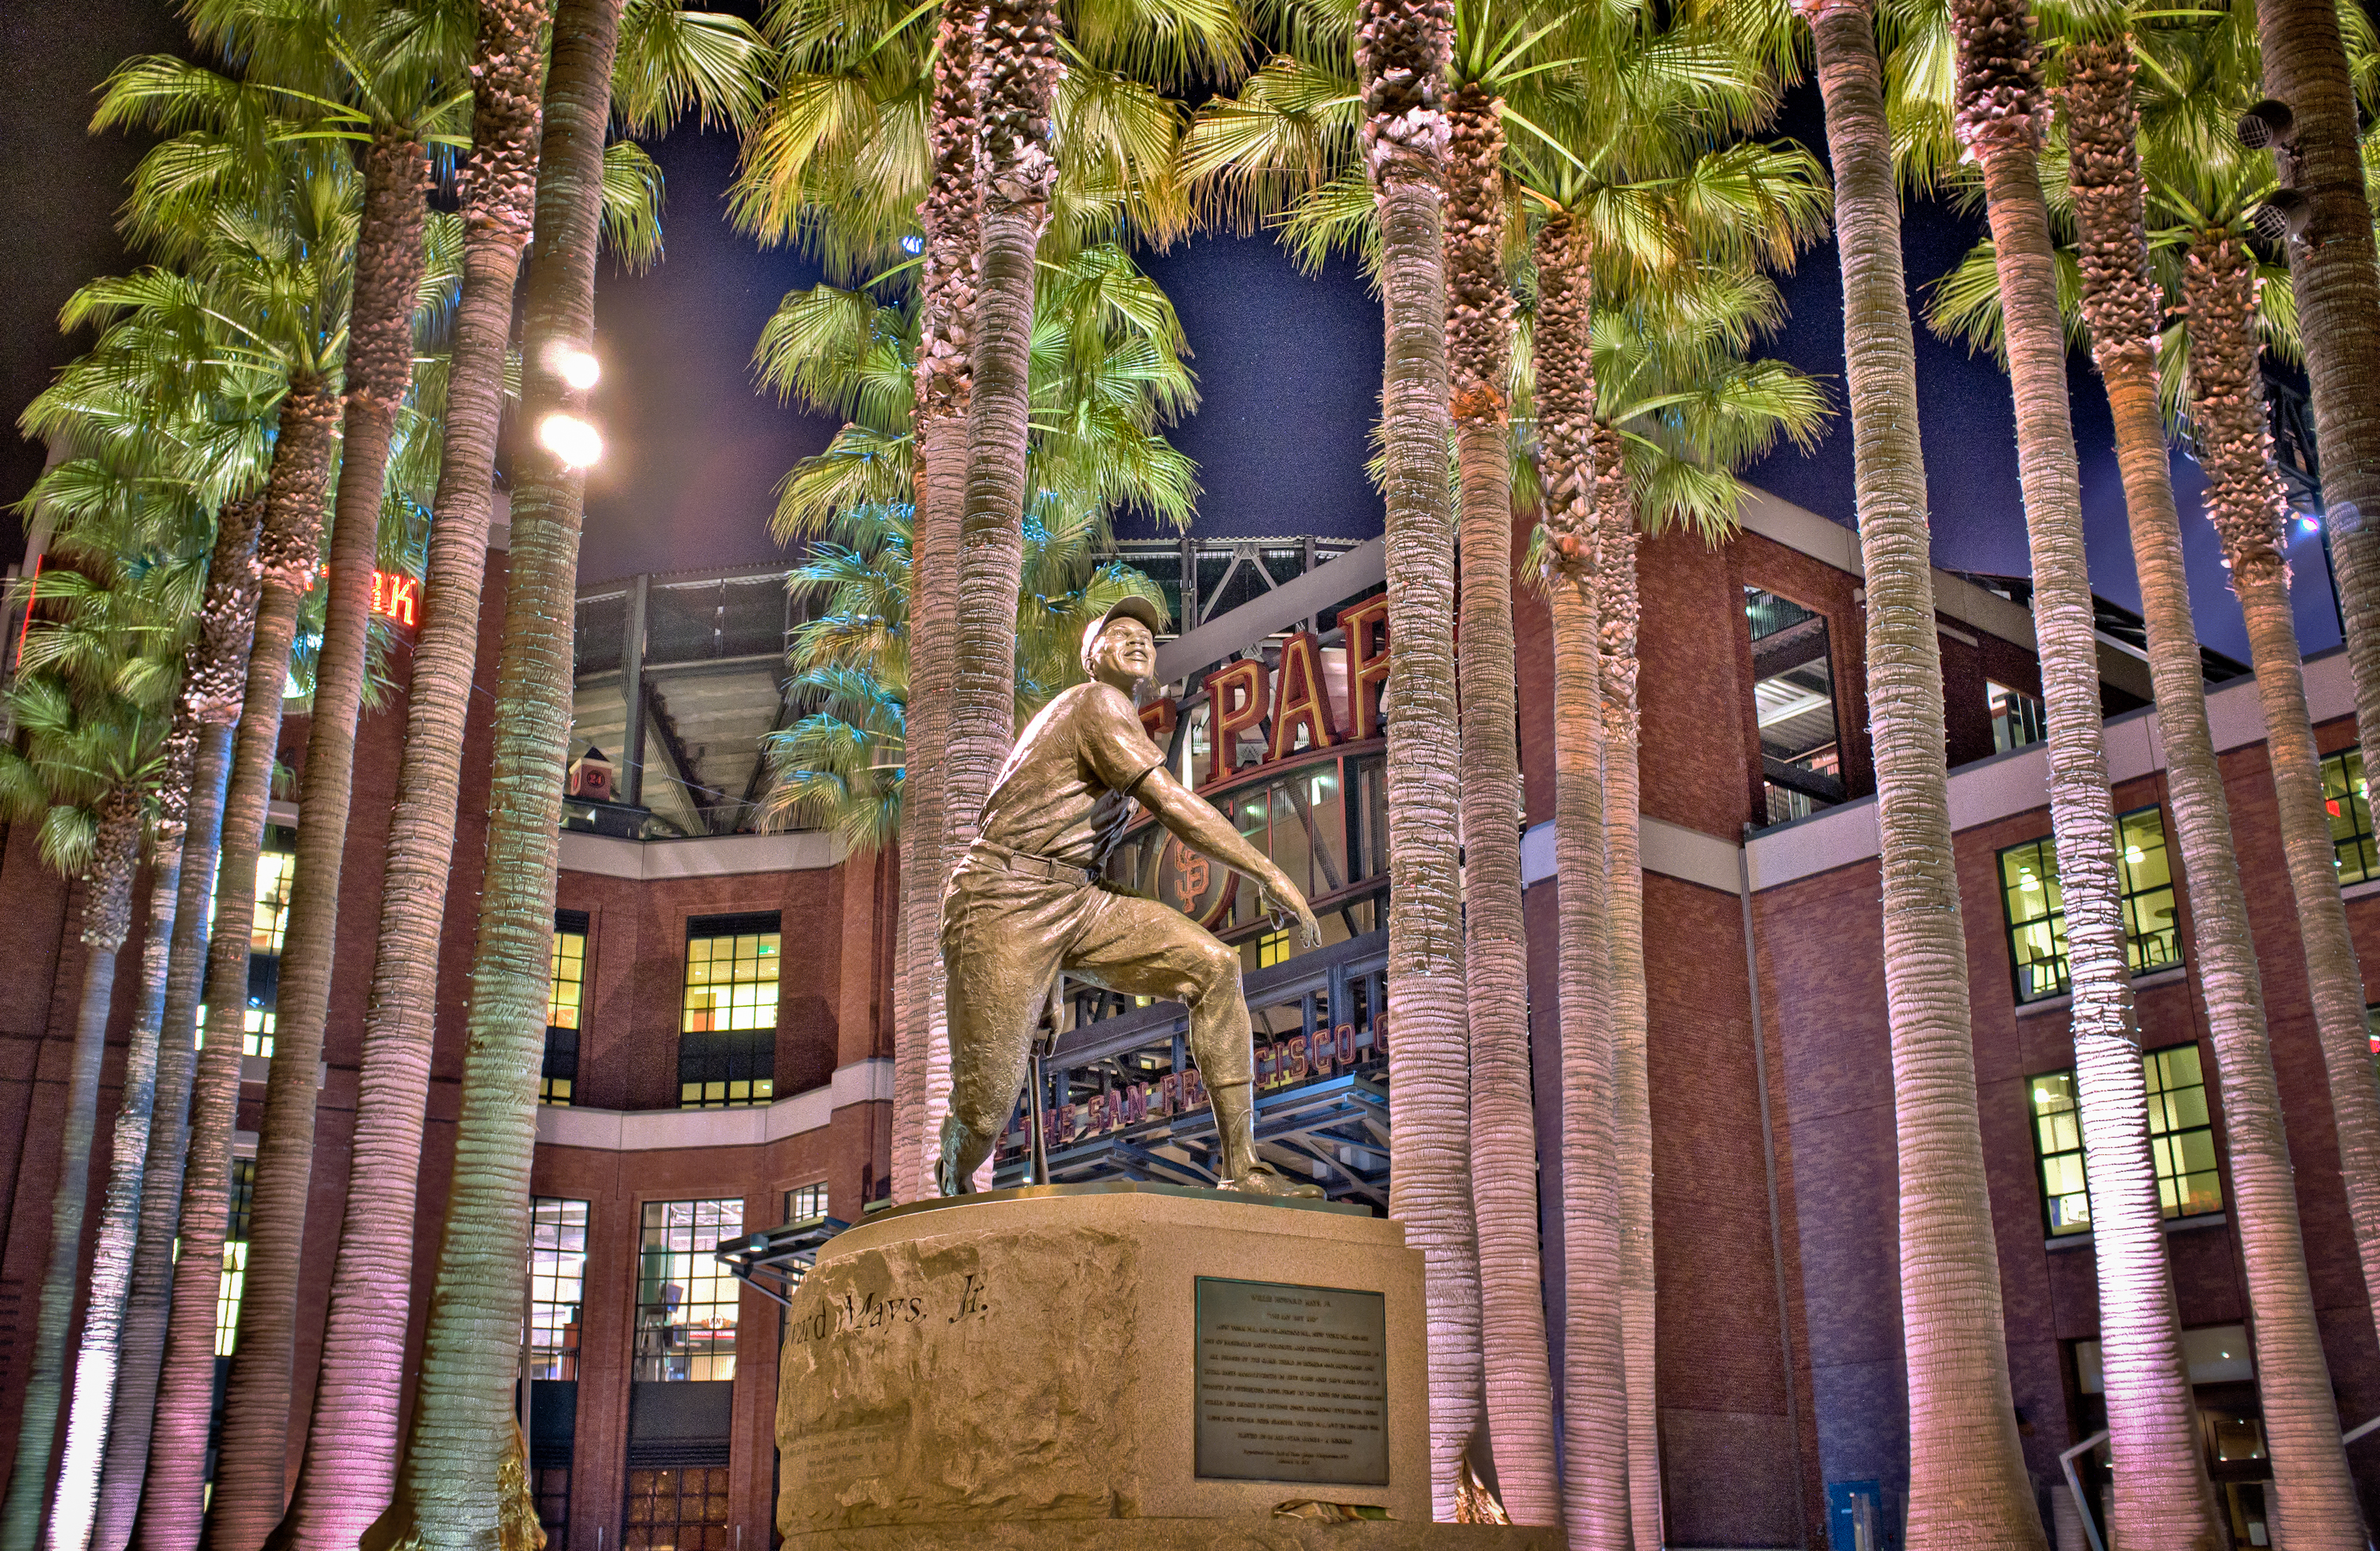 Photo: Willie Mays Plaza Fuji X100 ISO 5000 f/2.8 3 shot HDR, 2 stop separation